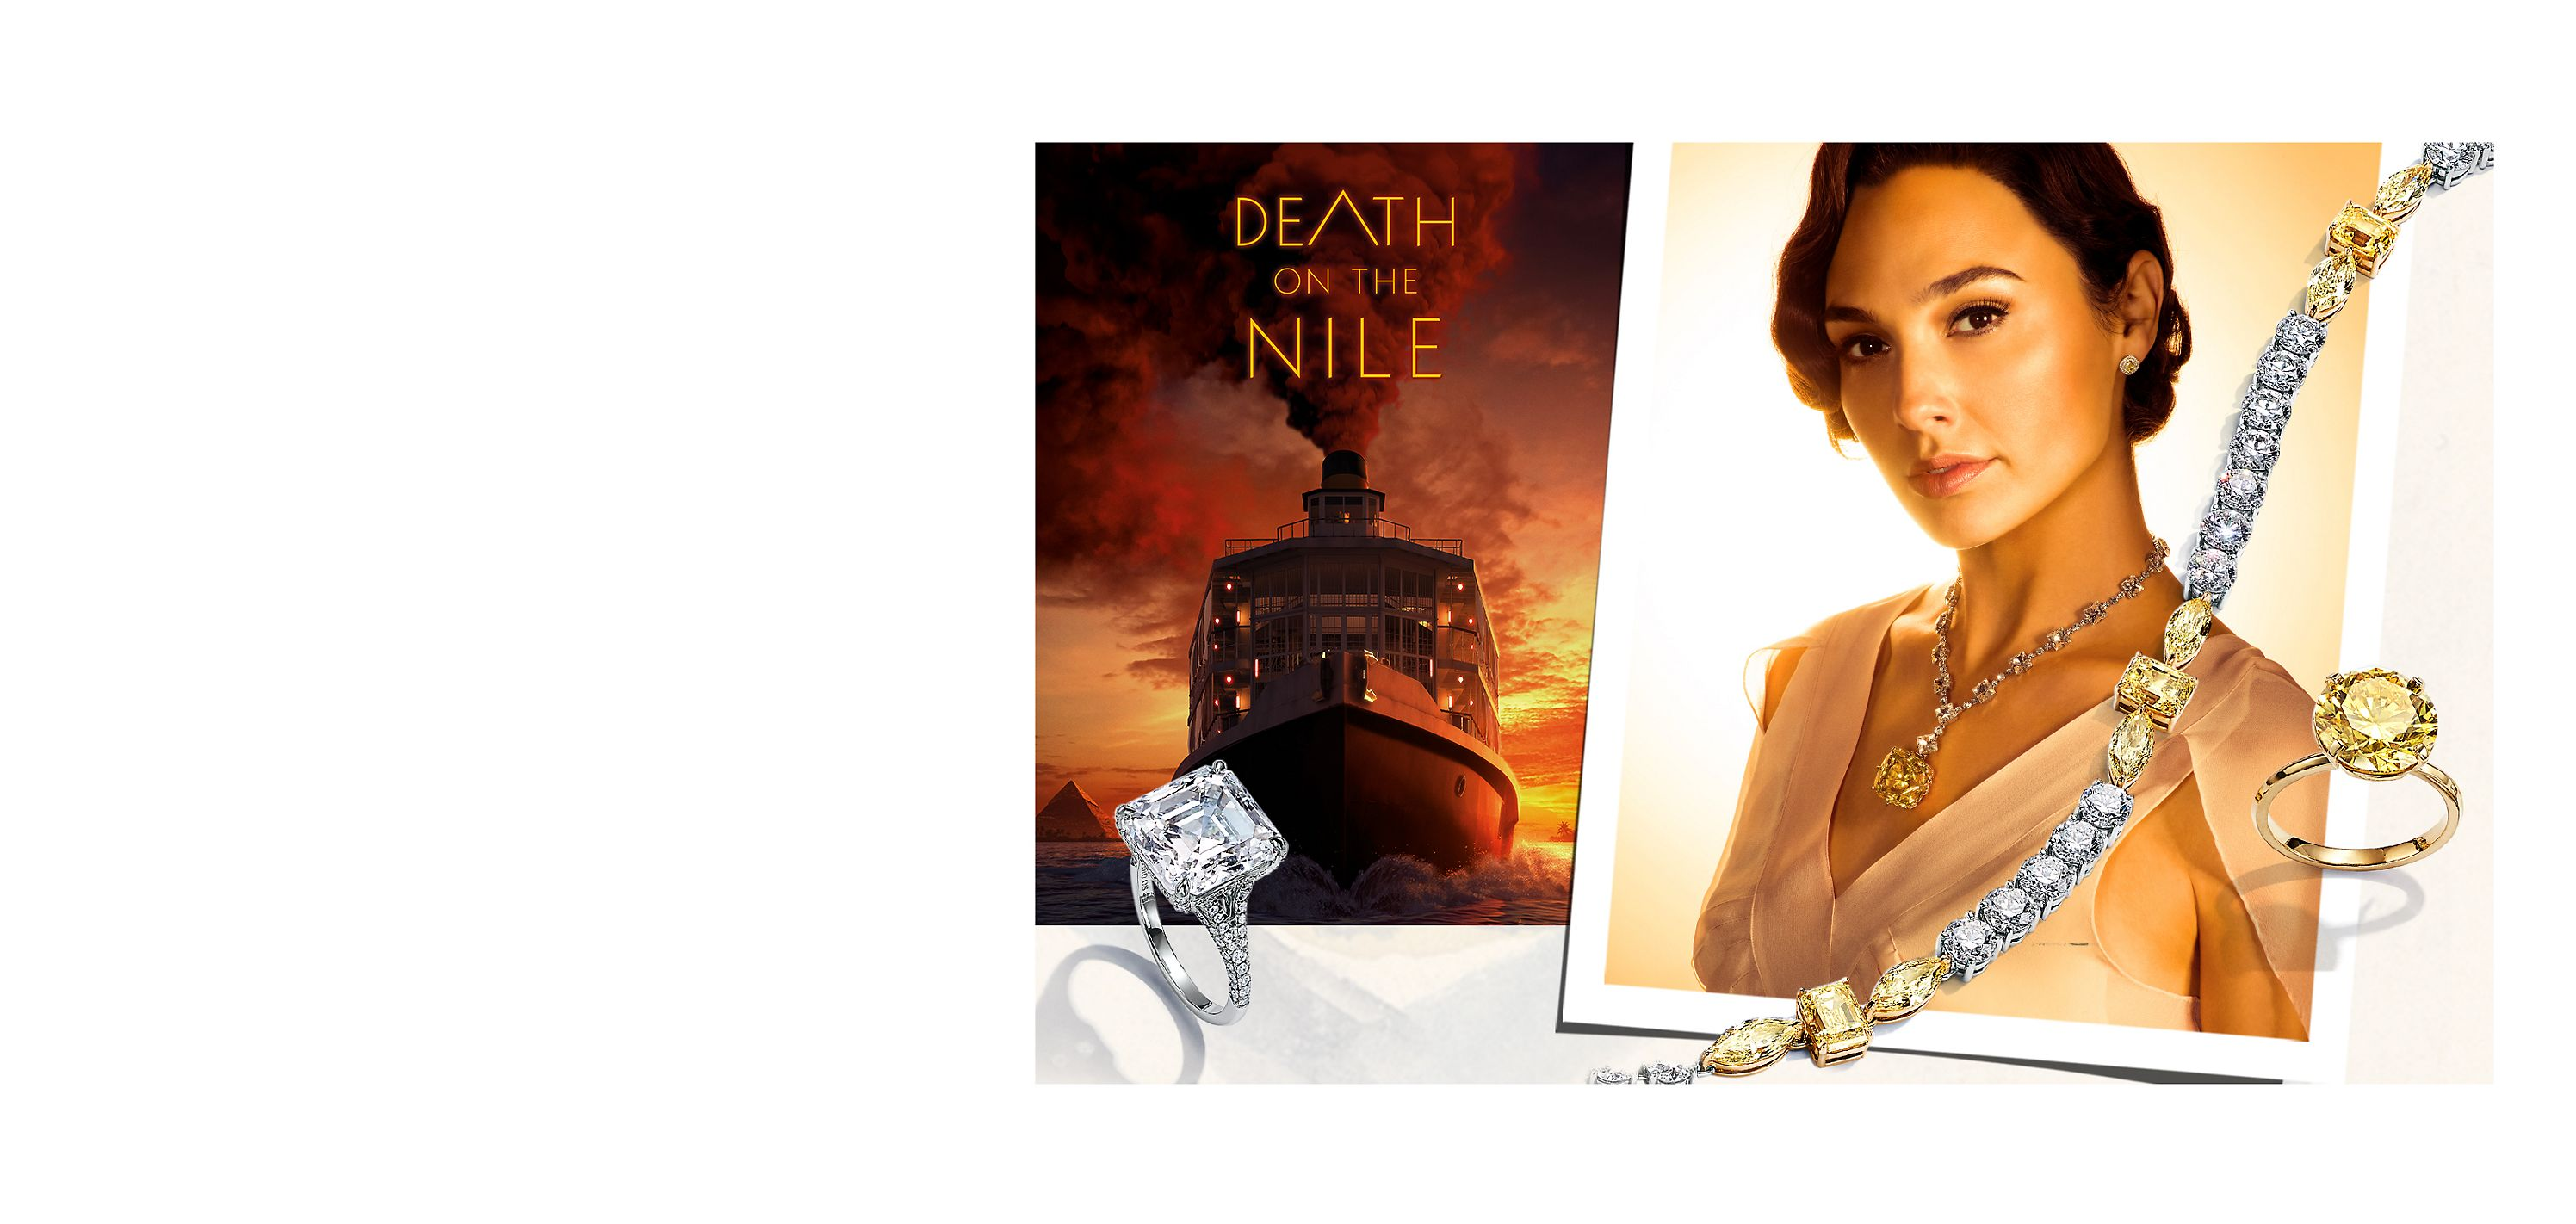 Discover Tiffany High Jewelry in 20th Century Studios' Death on the Nile